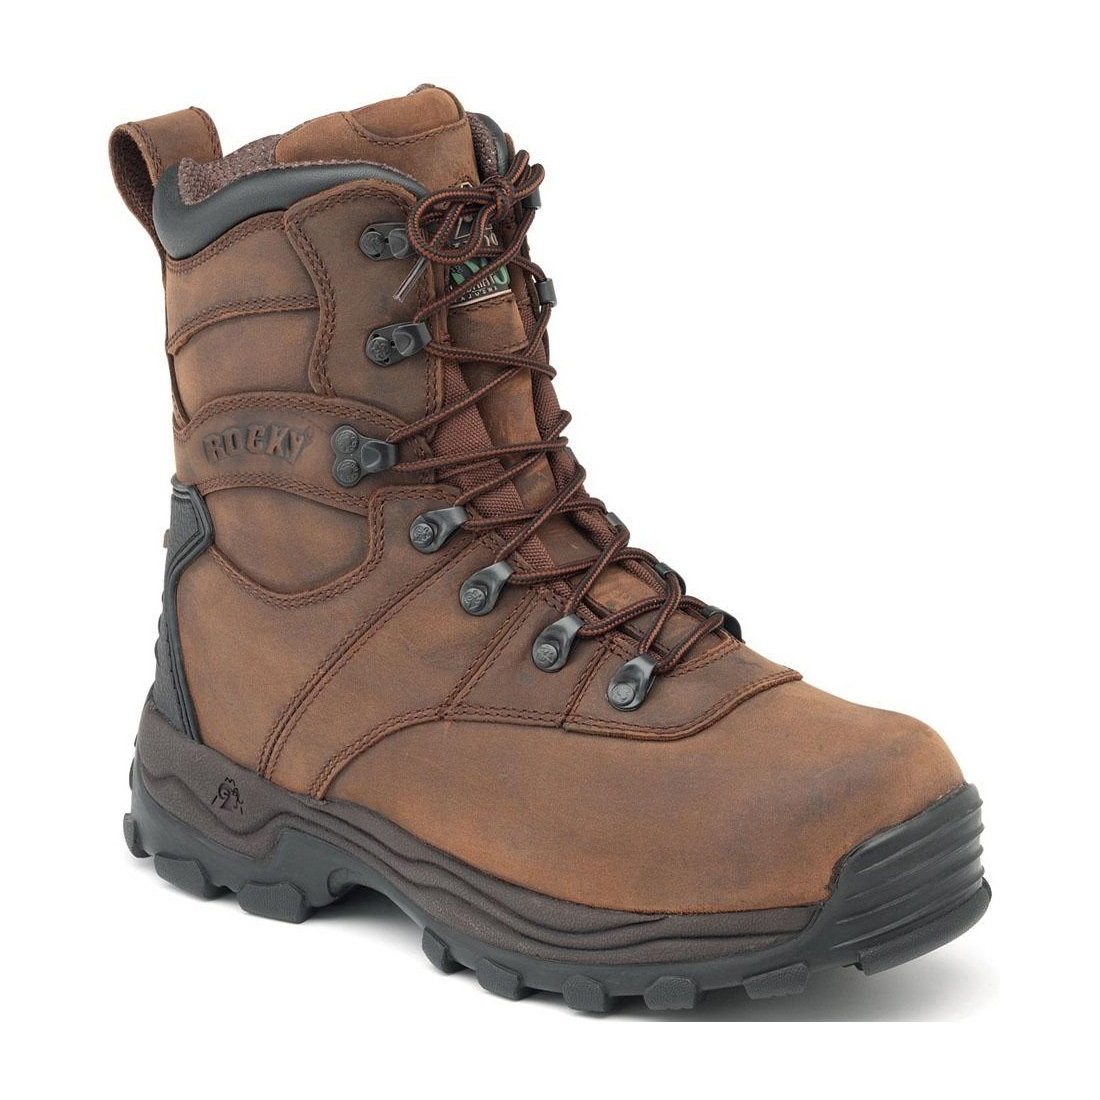 Rocky Sport Utility 8 Inch WP Boots - Brown | Uttings.co.uk